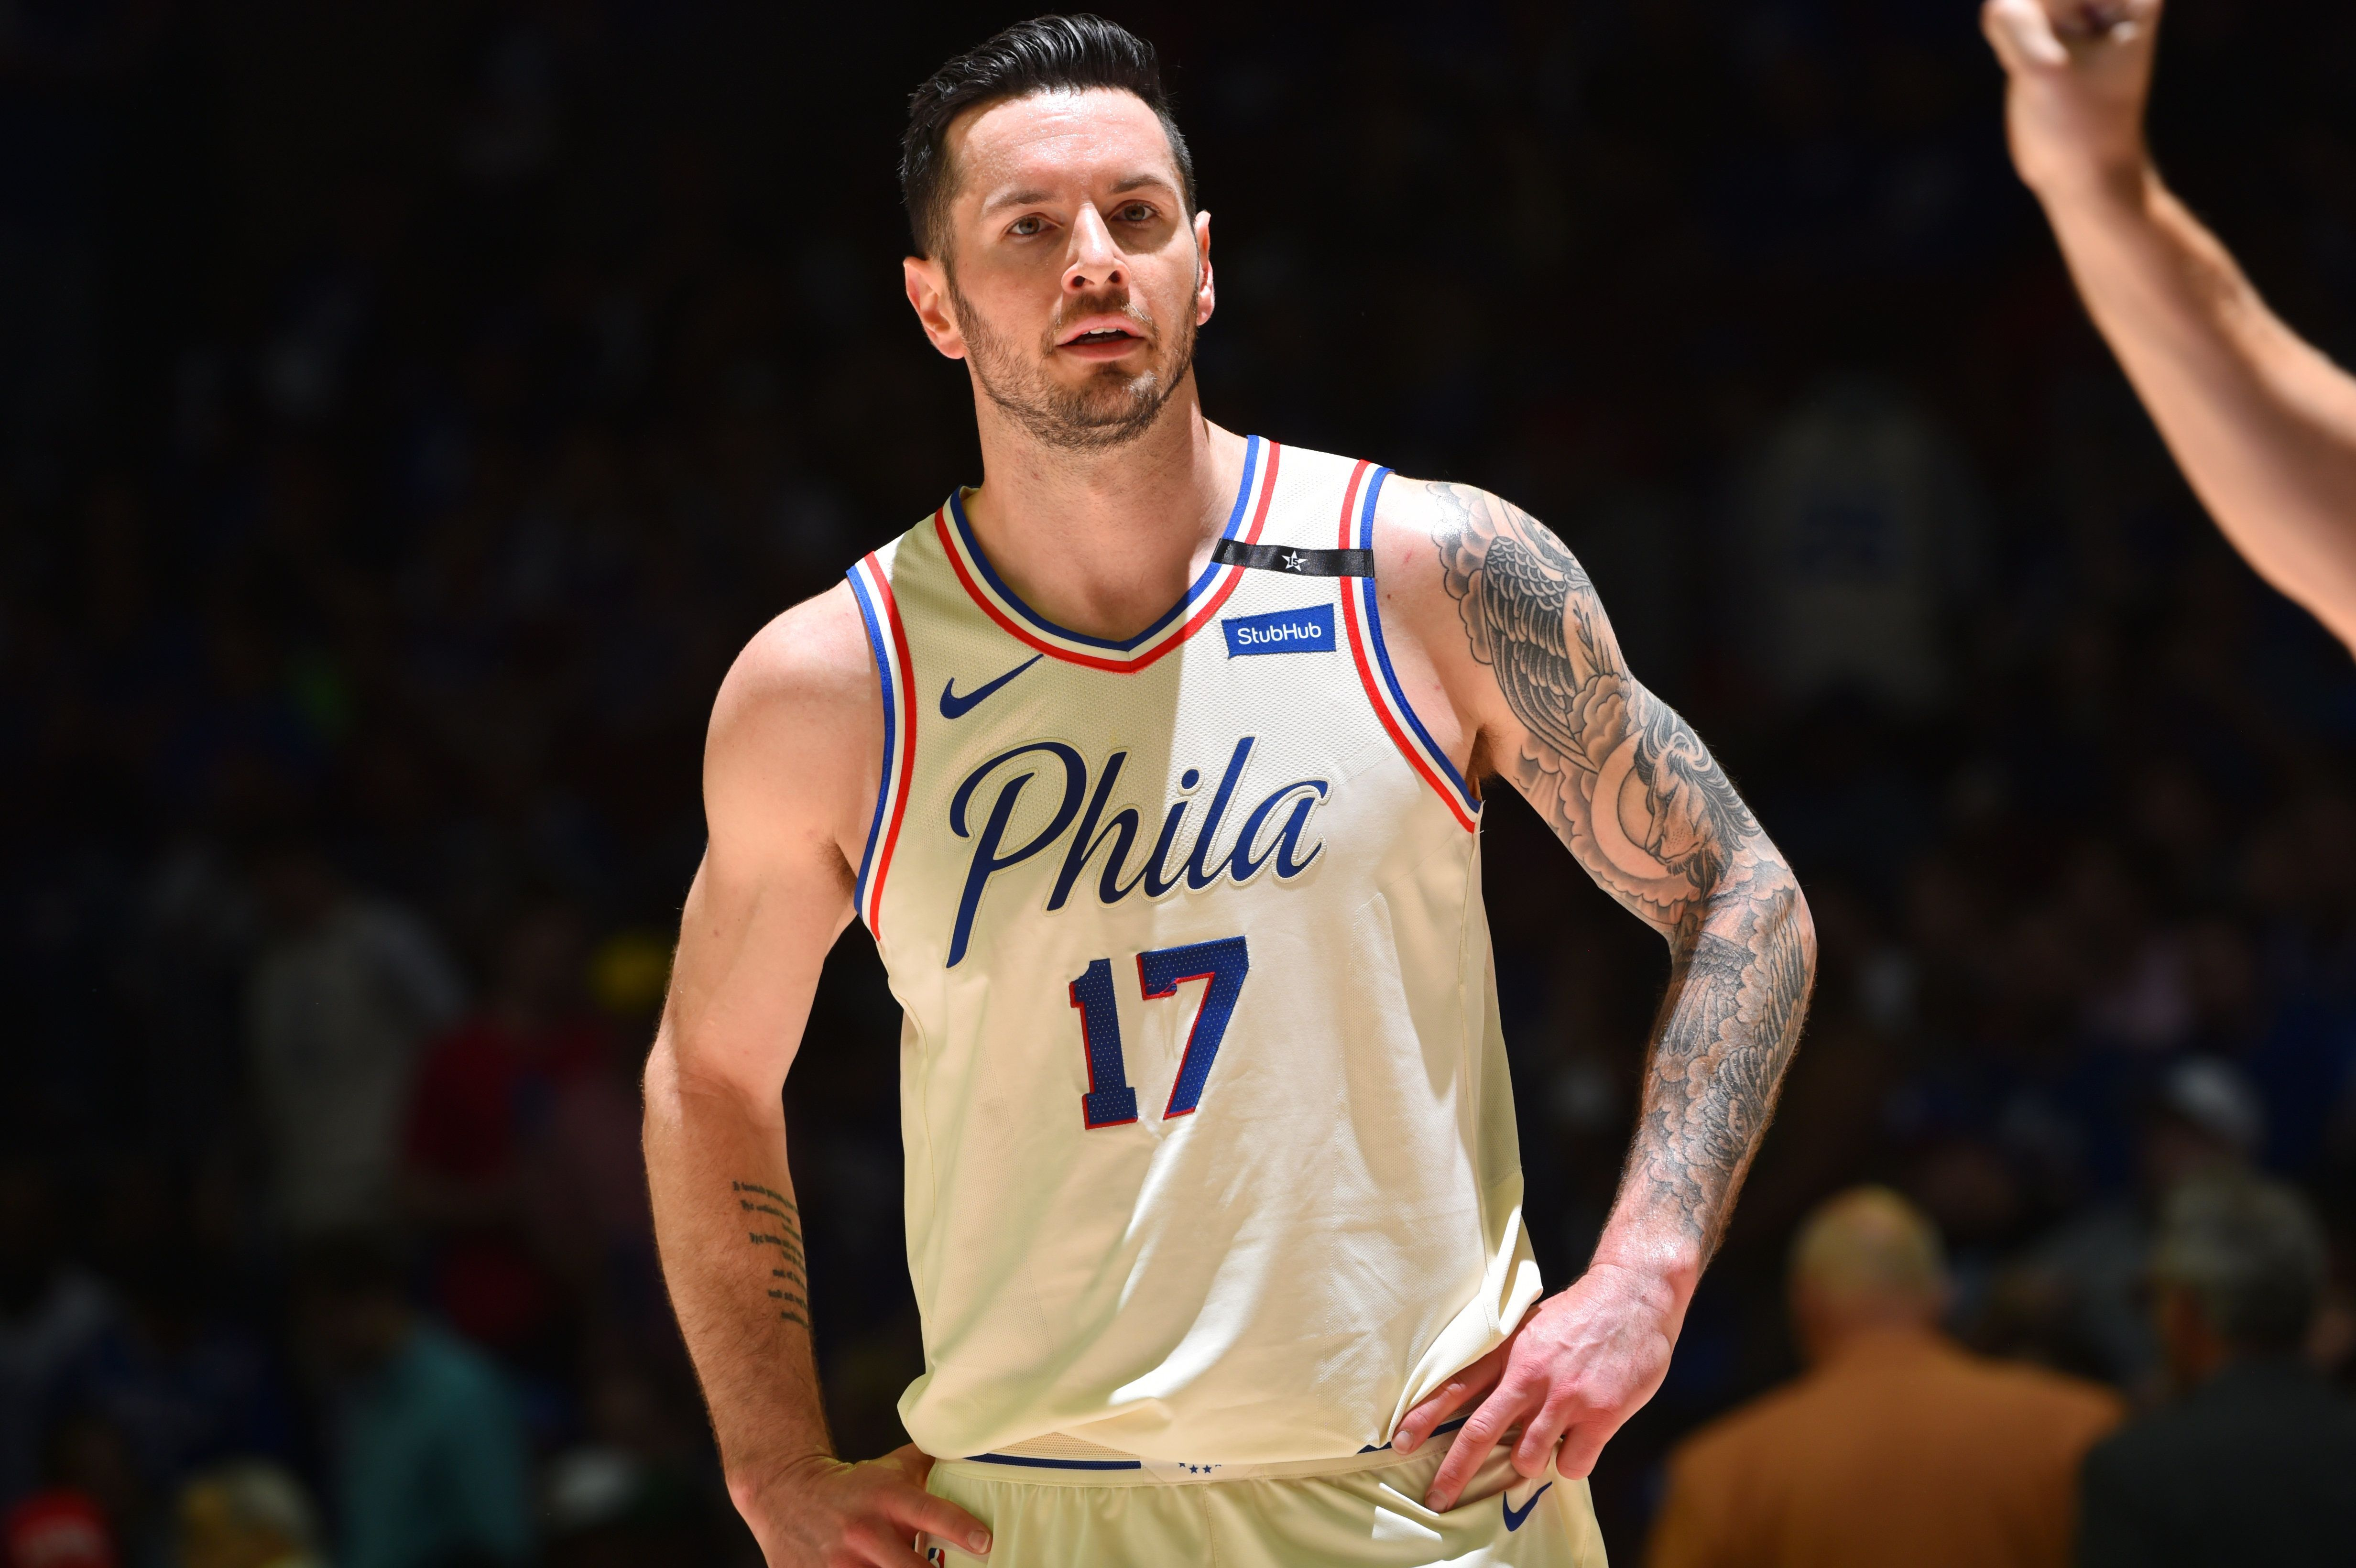 PHILADELPHIA, PA - May 5: JJ Redick #17 of the Philadelphia 76ers looks on against the Boston Celtics  during Game Three of the Eastern Conference Semi Finals of the 2018 NBA Playoffs on May 5, 2018 in Philadelphia, Pennsylvania NOTE TO USER: User expressly acknowledges and agrees that, by downloading and/or using this Photograph, user is consenting to the terms and conditions of the Getty Images License Agreement. Mandatory Copyright Notice: Copyright 2018 NBAE (Photo by Jesse D. Garrabrant/NBAE via Getty Images)